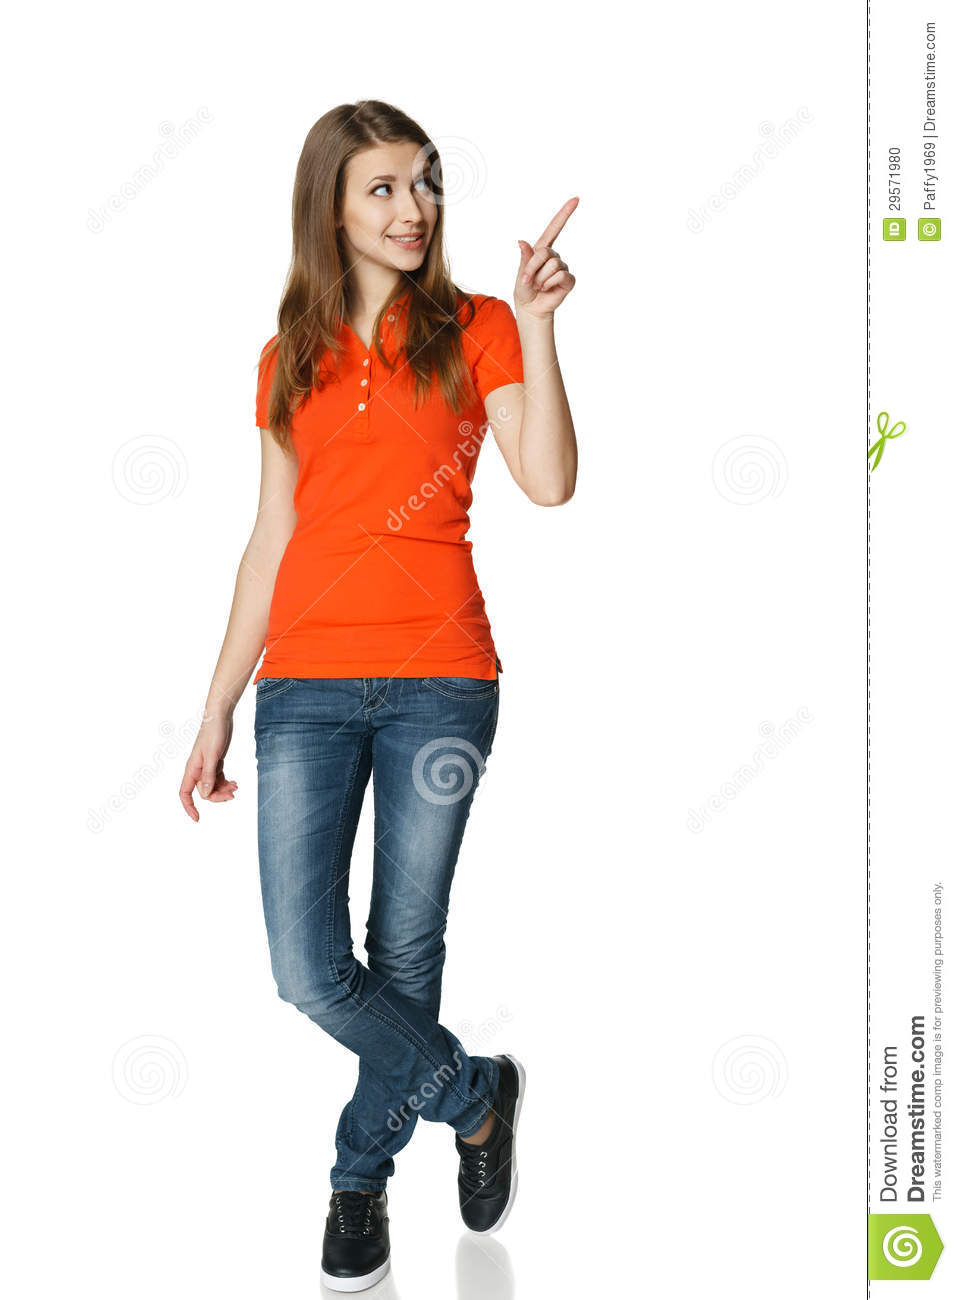 happy-woman-pointing-to-side-standing-fu